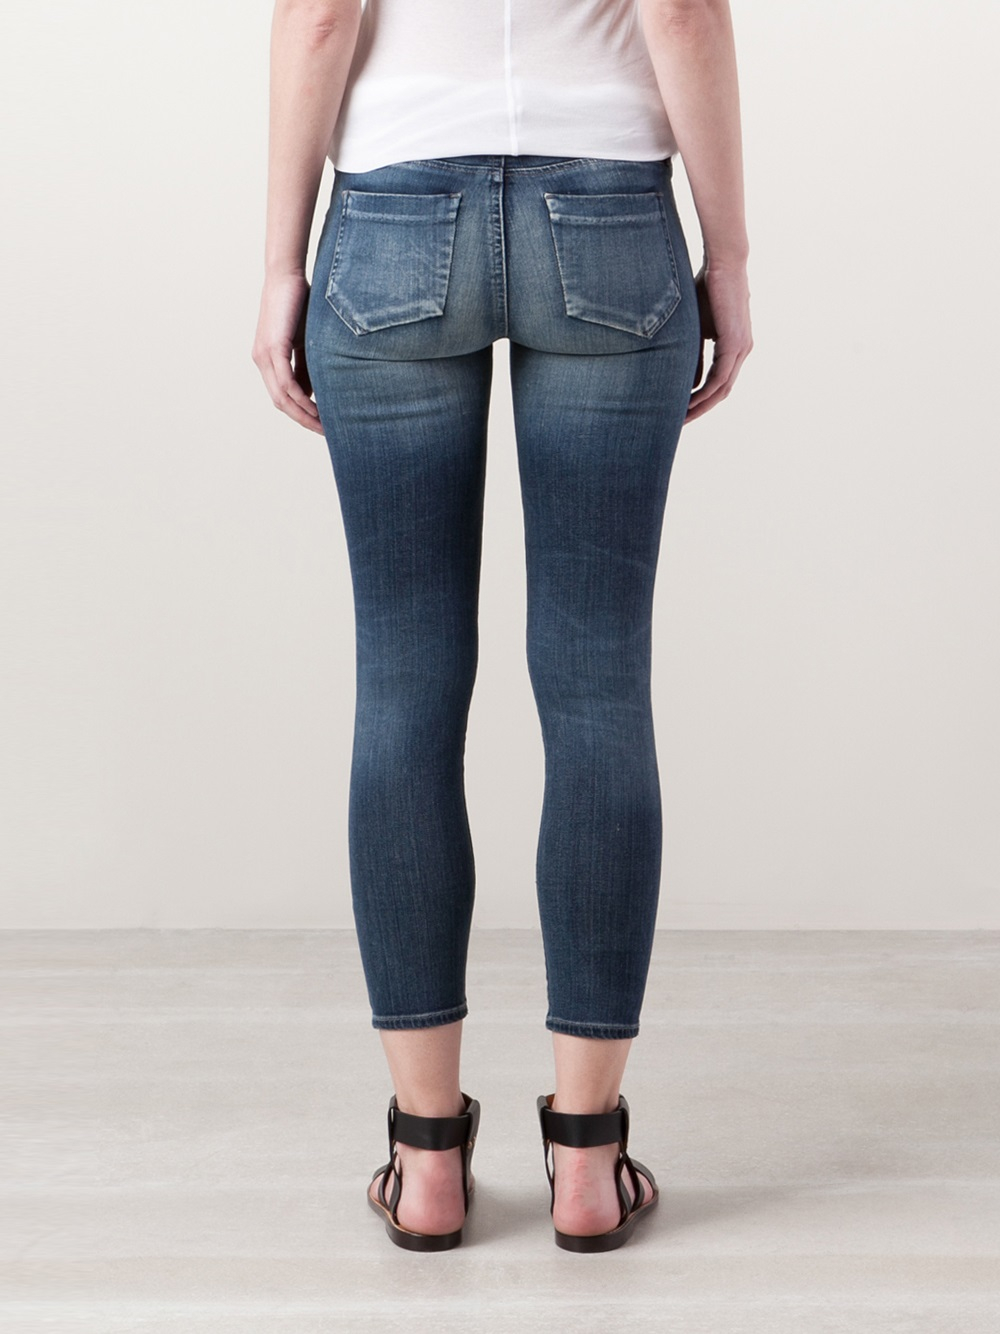 Goldsign Glam Skinny Leg Cropped Jeans in Blue